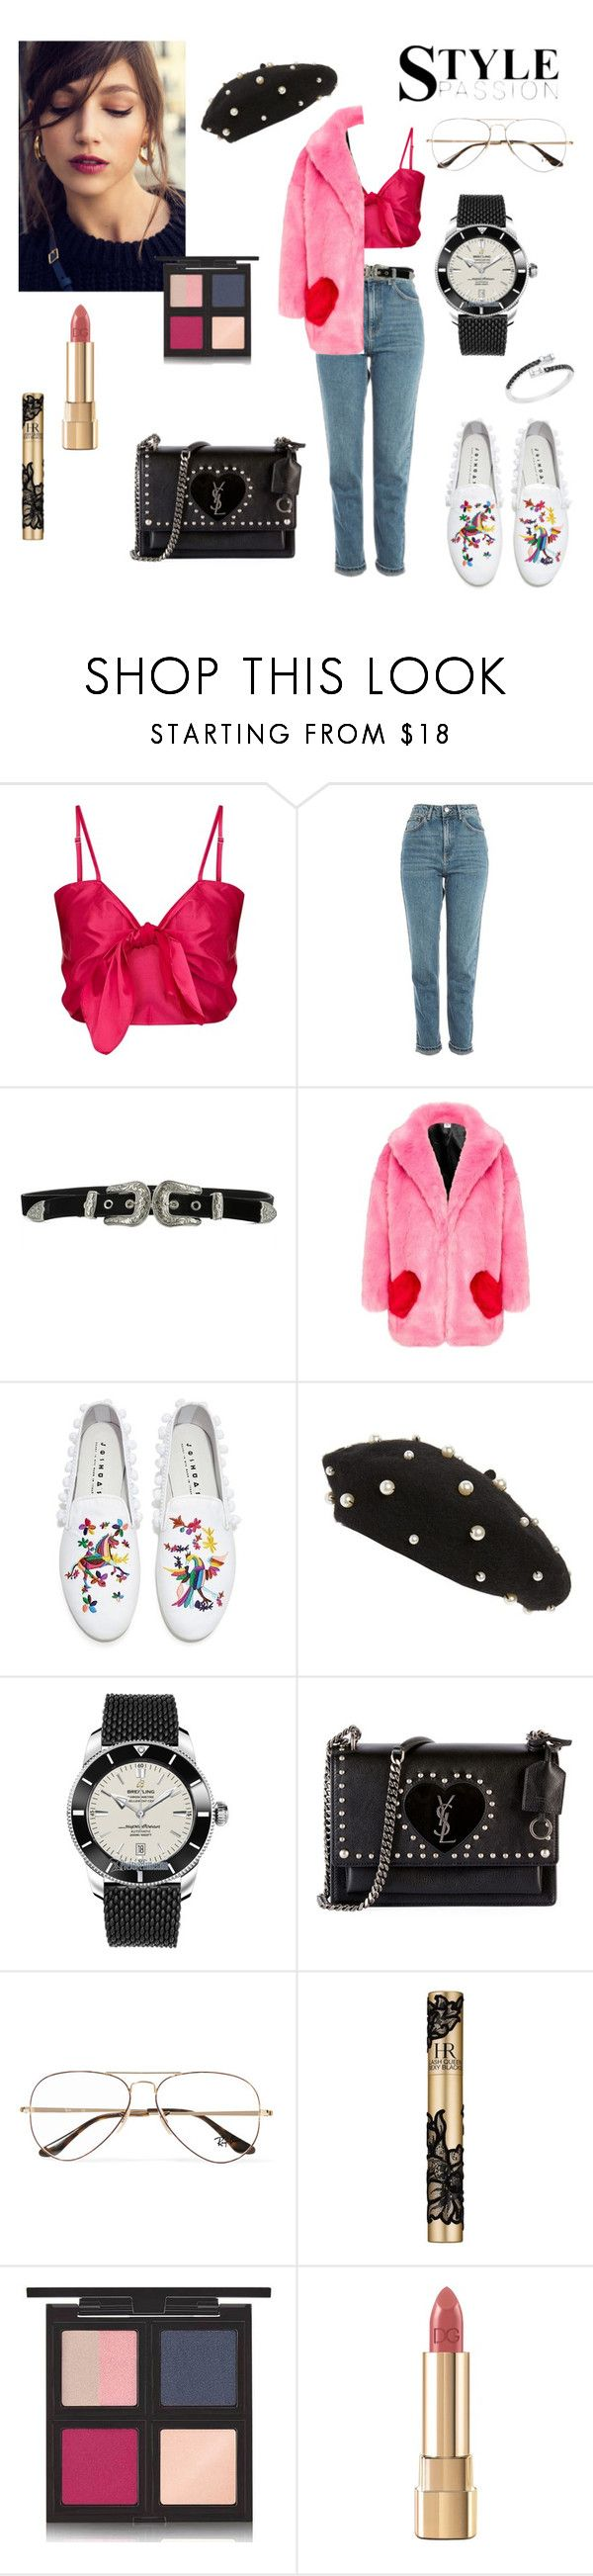 """""""Untitled #397"""" by gloriatovizi on Polyvore featuring Topshop, B-Low the Belt, Joshua's, Breitling, Yves Saint Laurent, Ray-Ban, Helena Rubenstein, The Body Shop and Dolce&Gabbana"""